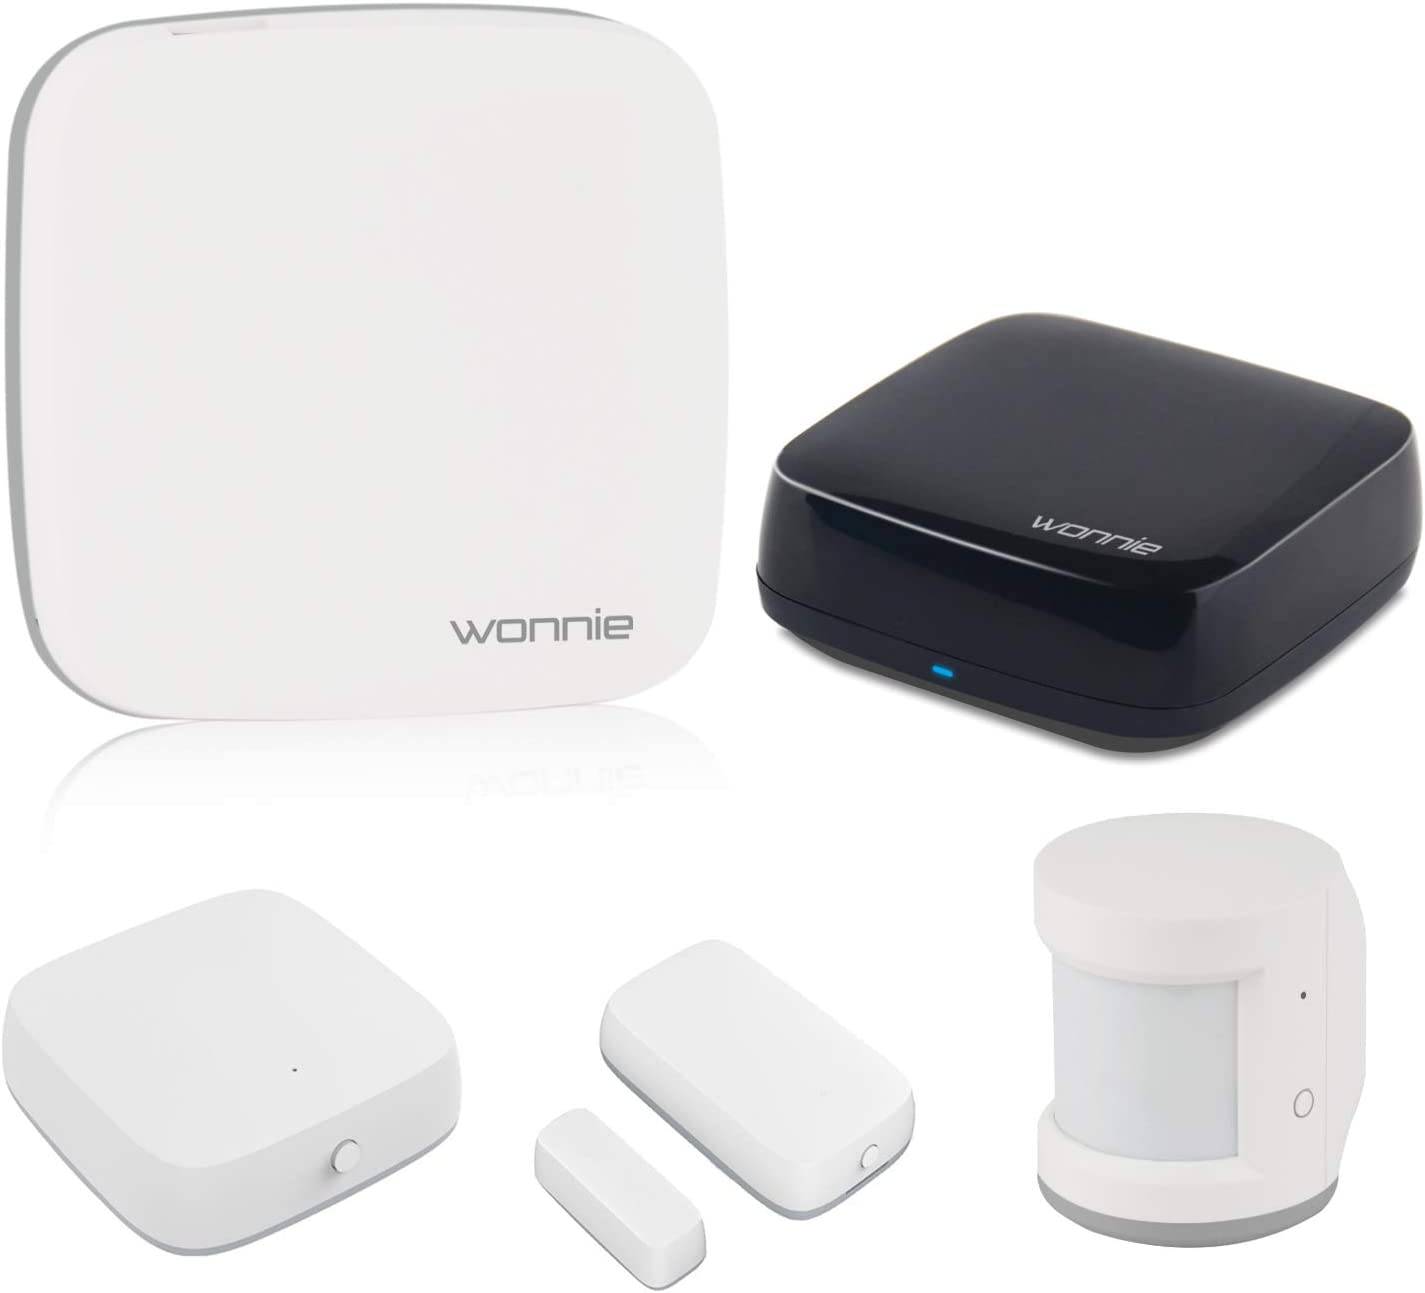 WONNIE Wireless Alarm System for Home, Home Monitoring Kit with 24/7 Professional Security System, Work with Alexa and Google Assistant, WiFi Home Automation Hub